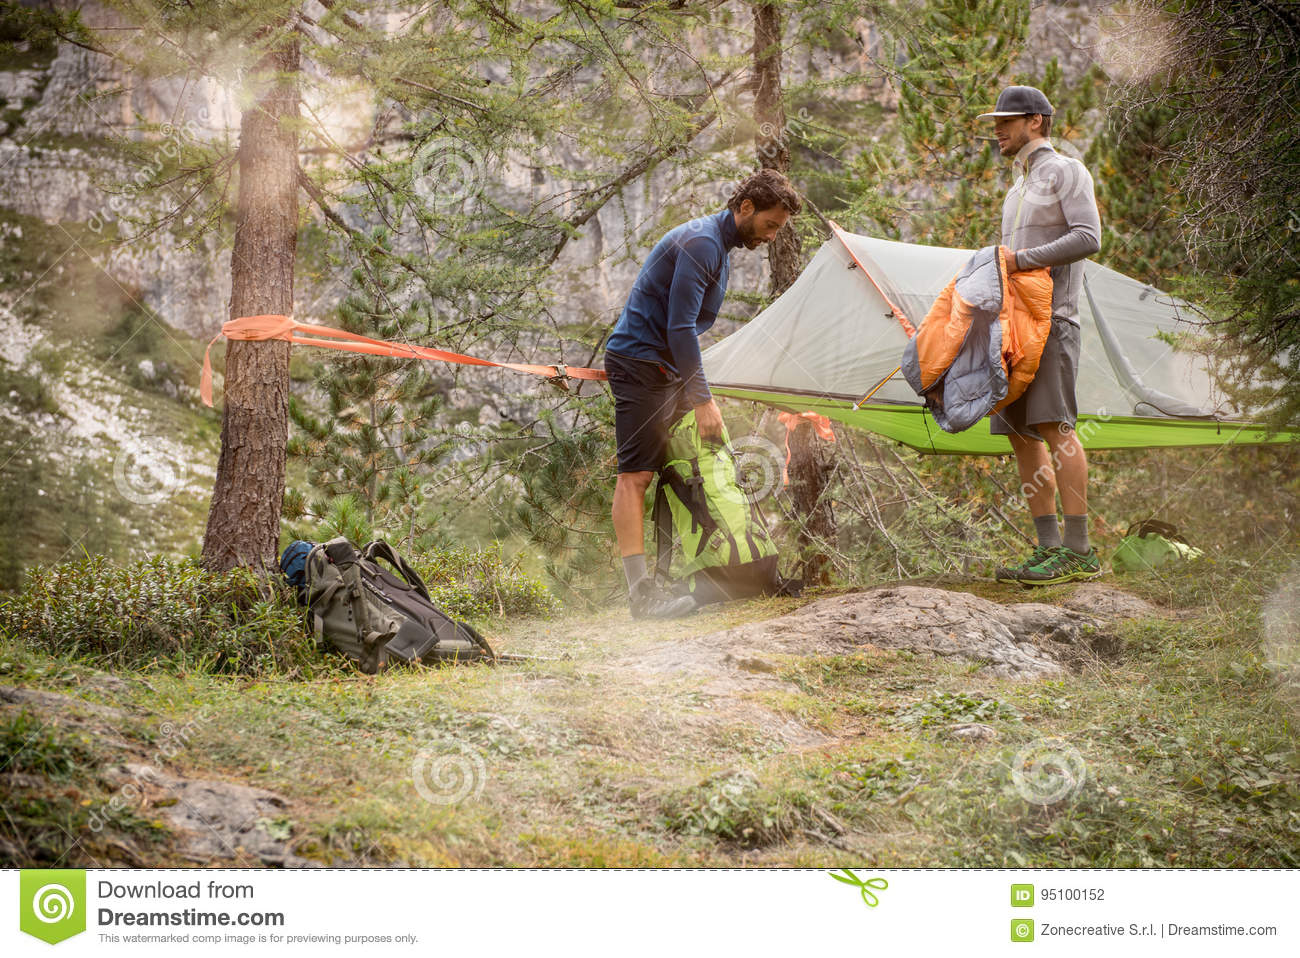 Two men preparing hanging tent c&ing near forest woods.Group of friends people summer adventure journey in mountain nature outdoors. & Two Men Preparing Hanging Tent Camping Near Forest Woods.Group Of ...